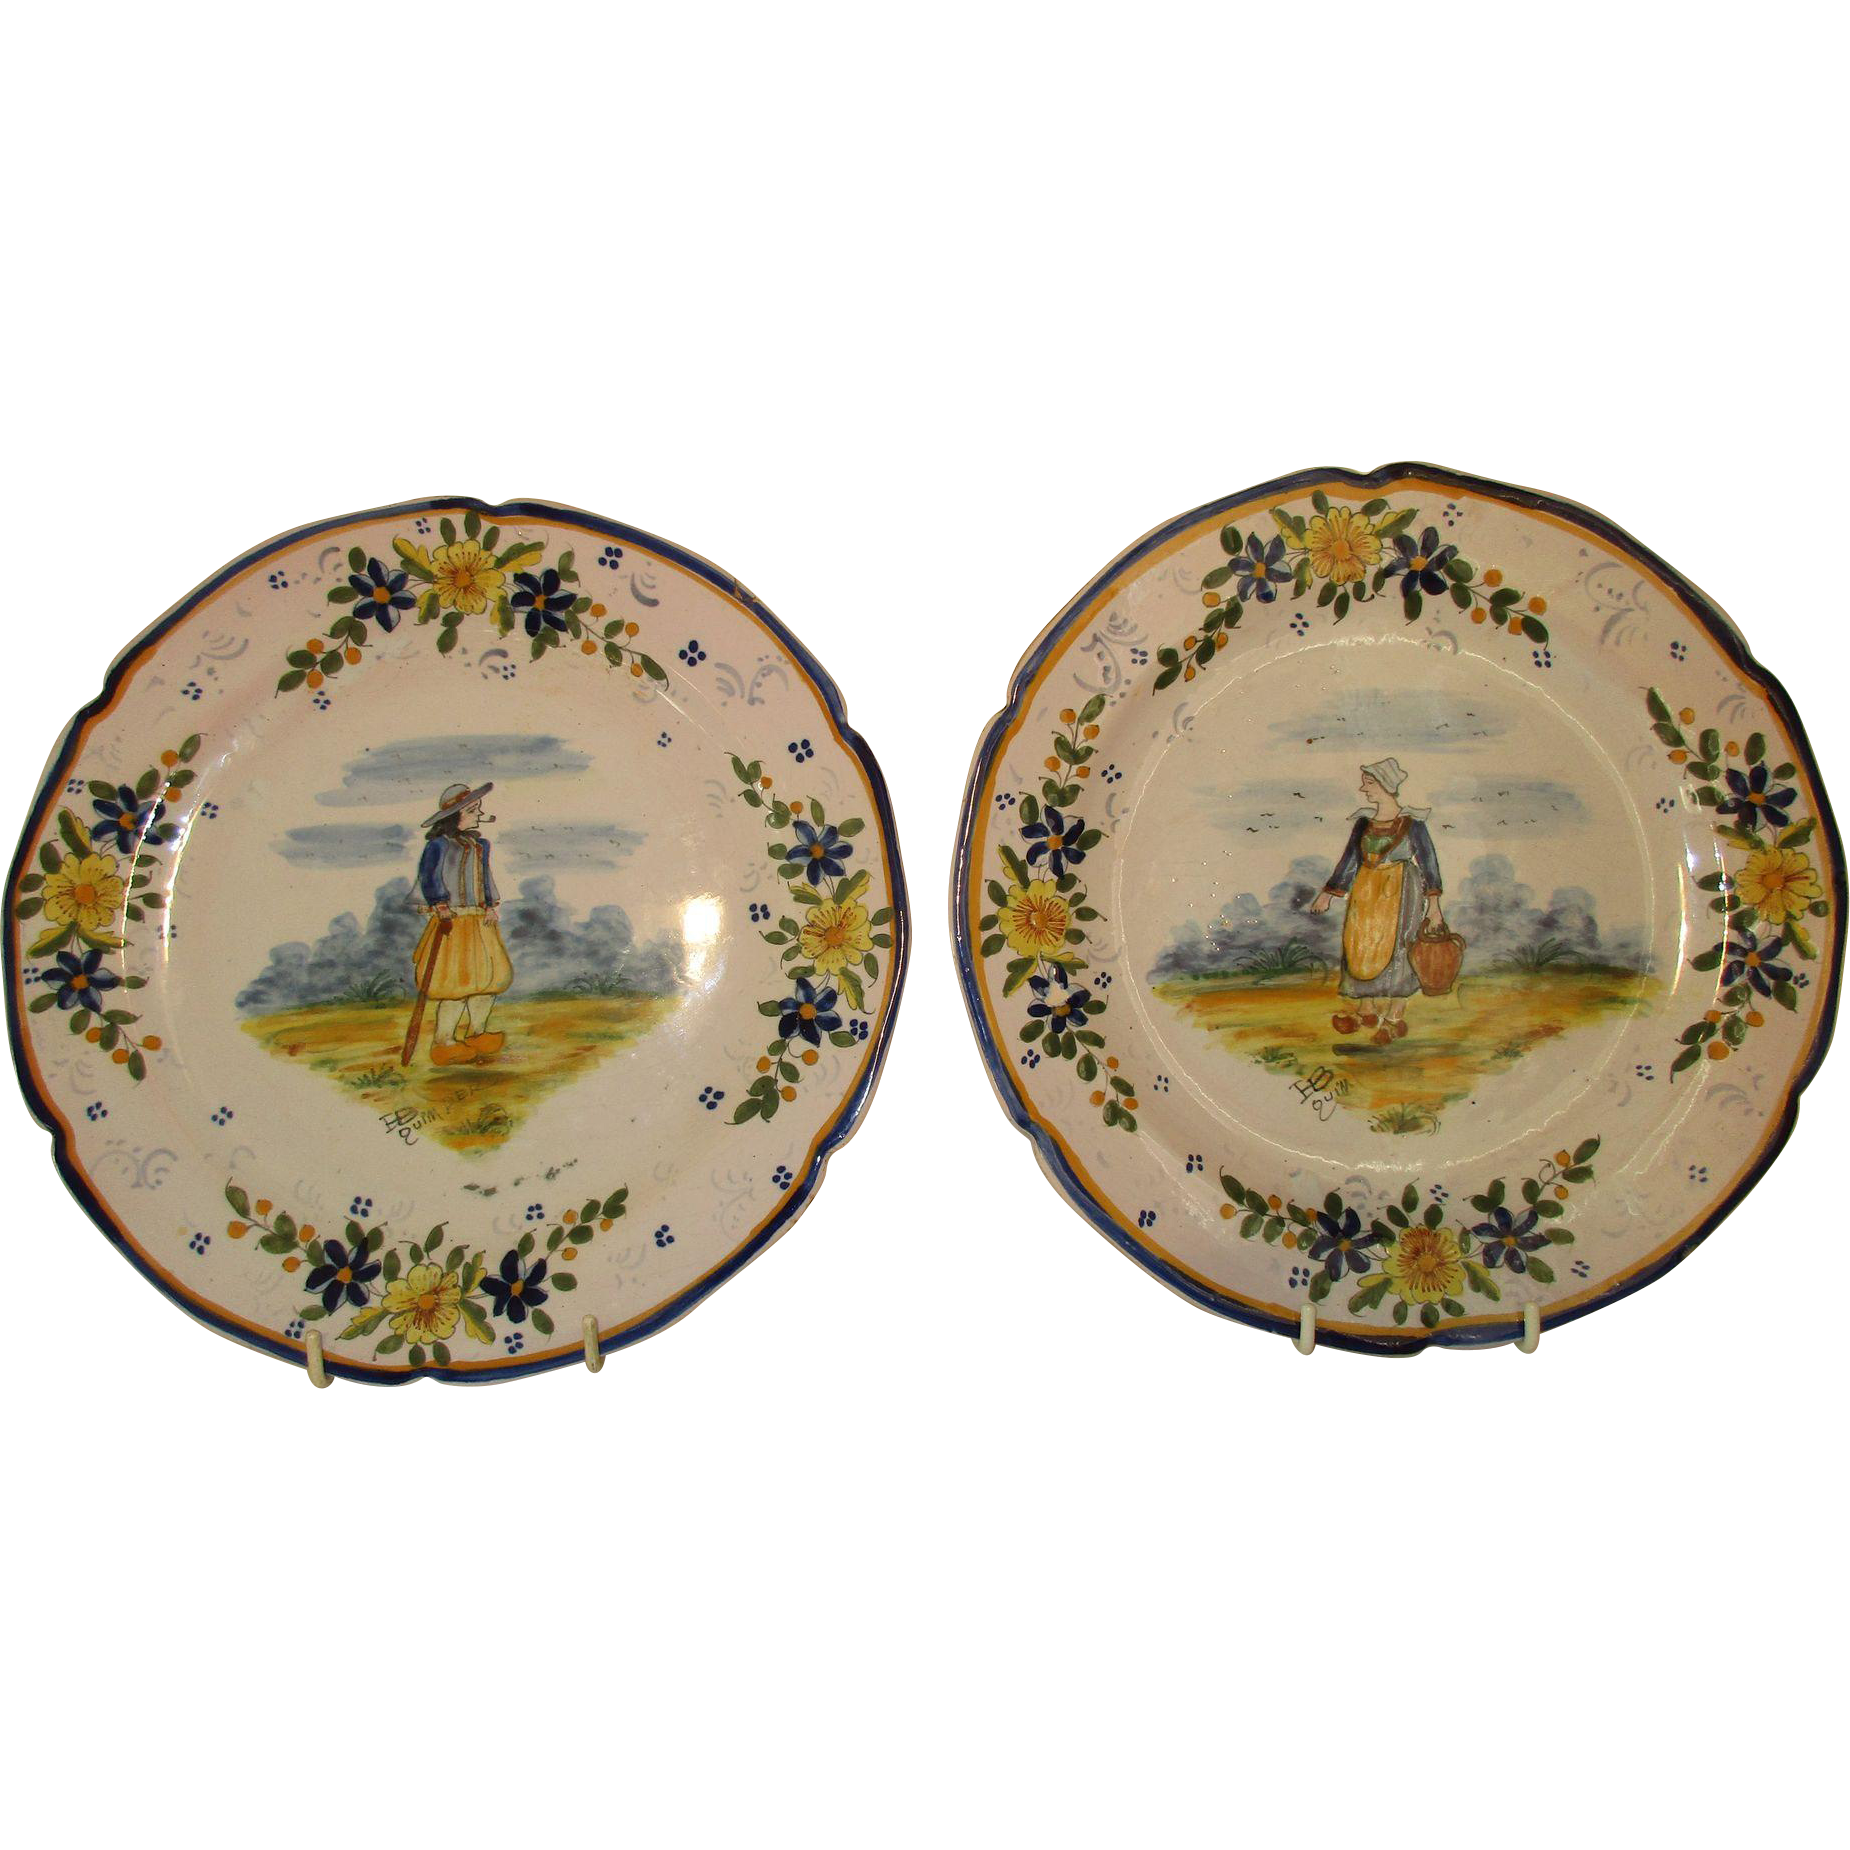 Pair antique quimper french plates c 1904 from exclusive heirlooms on ruby lane - Vintage antique baby room ideas timeless charm appeal ...